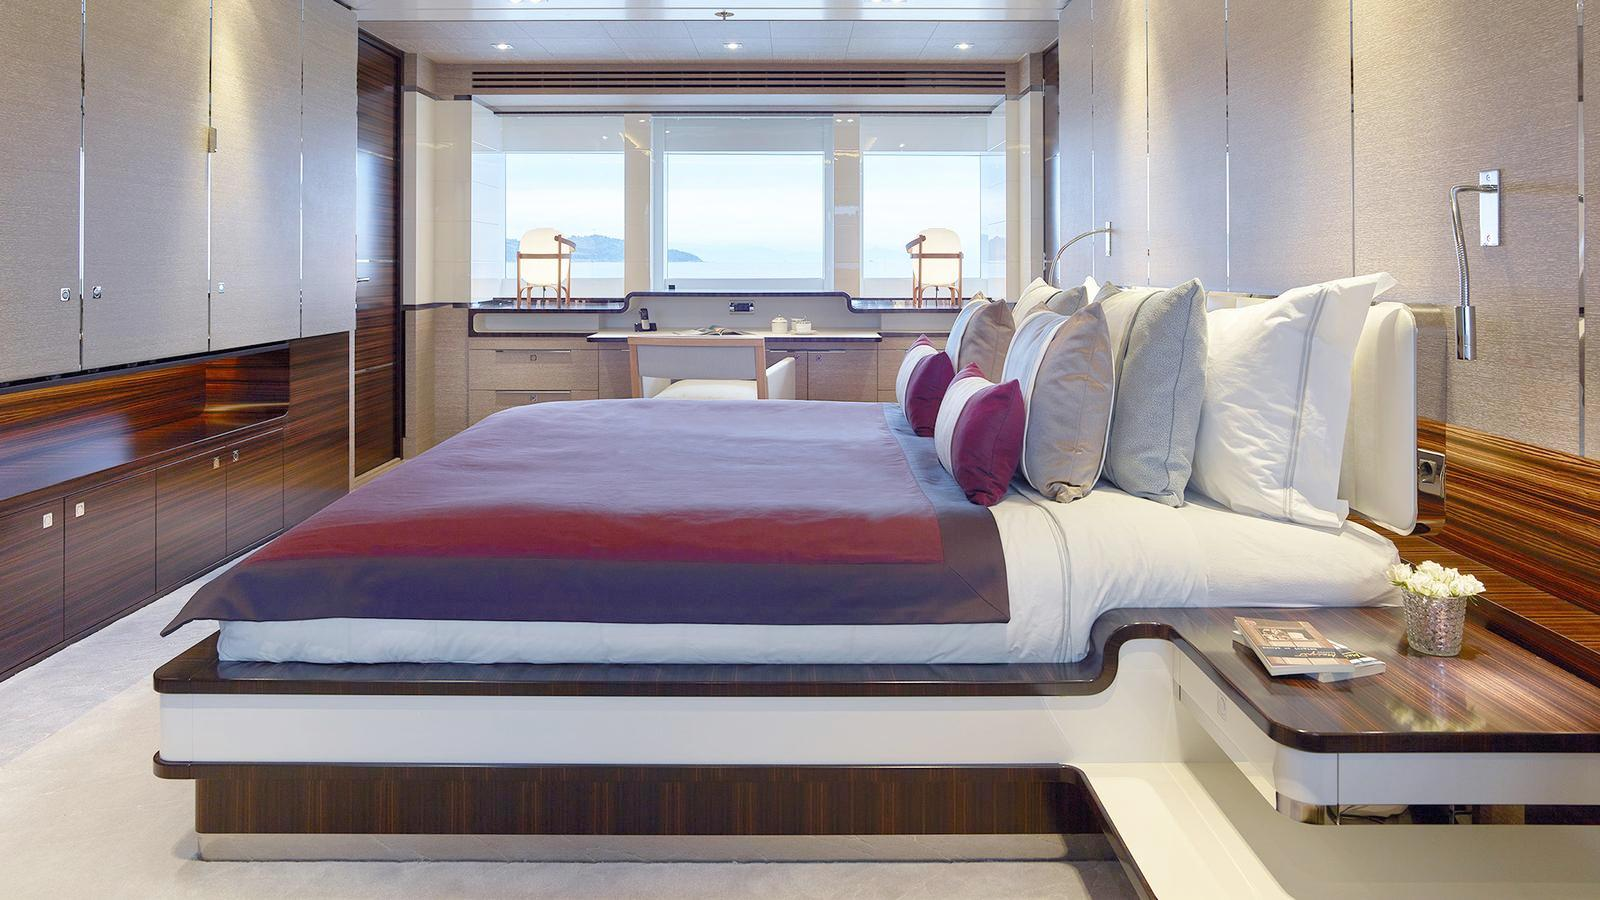 12 GUESTS / 5 STATEROOMS